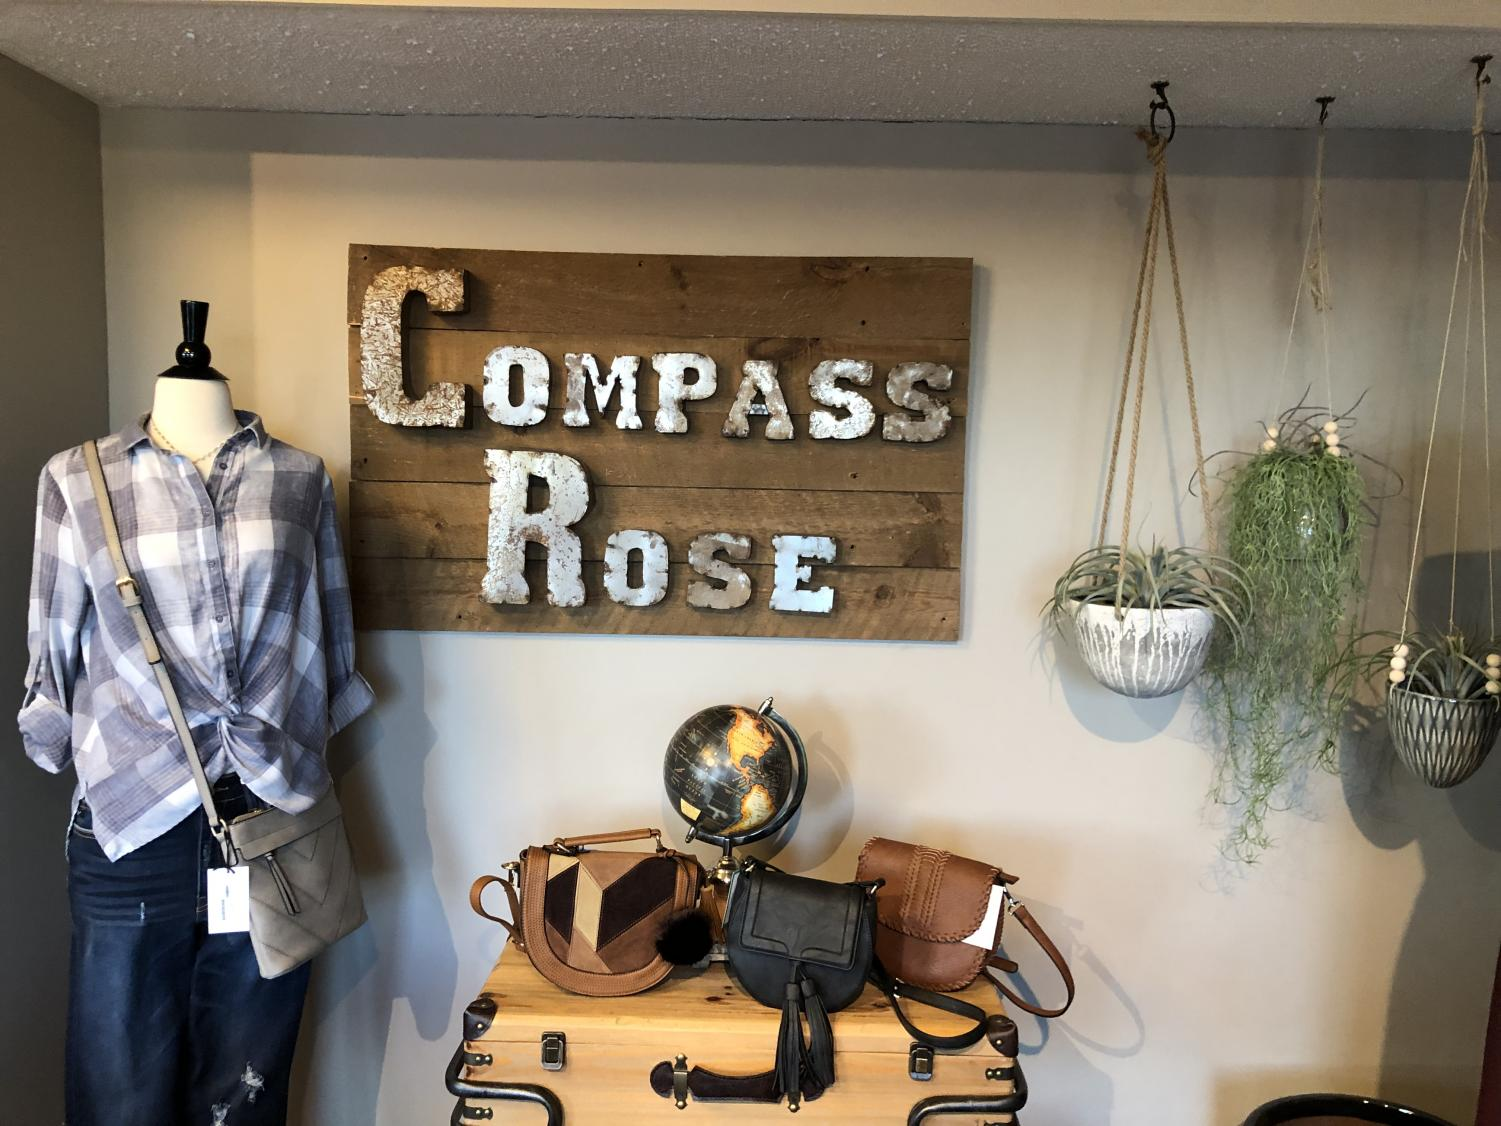 Compass Rose is a small boutique in Tollgate Village that is owned by Dallastown graduate Holly Wagman. Wagman majored in Biology in college but her love of fashion led her in a different direction.